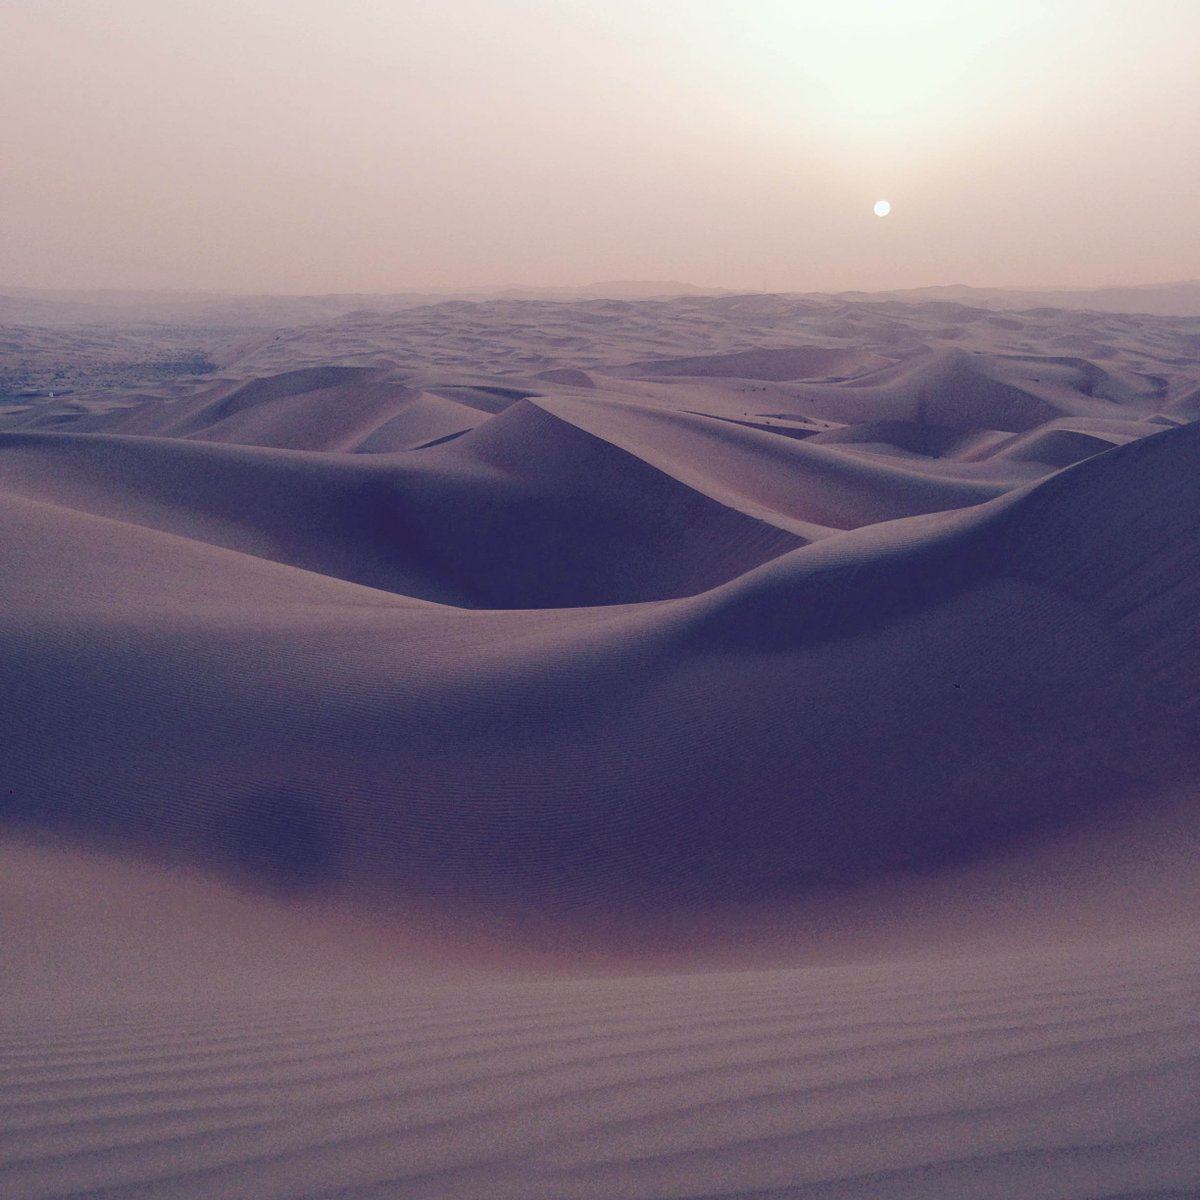 Spending a night in the desert InAbuDhabi is an experience you'll never forget. Book now: